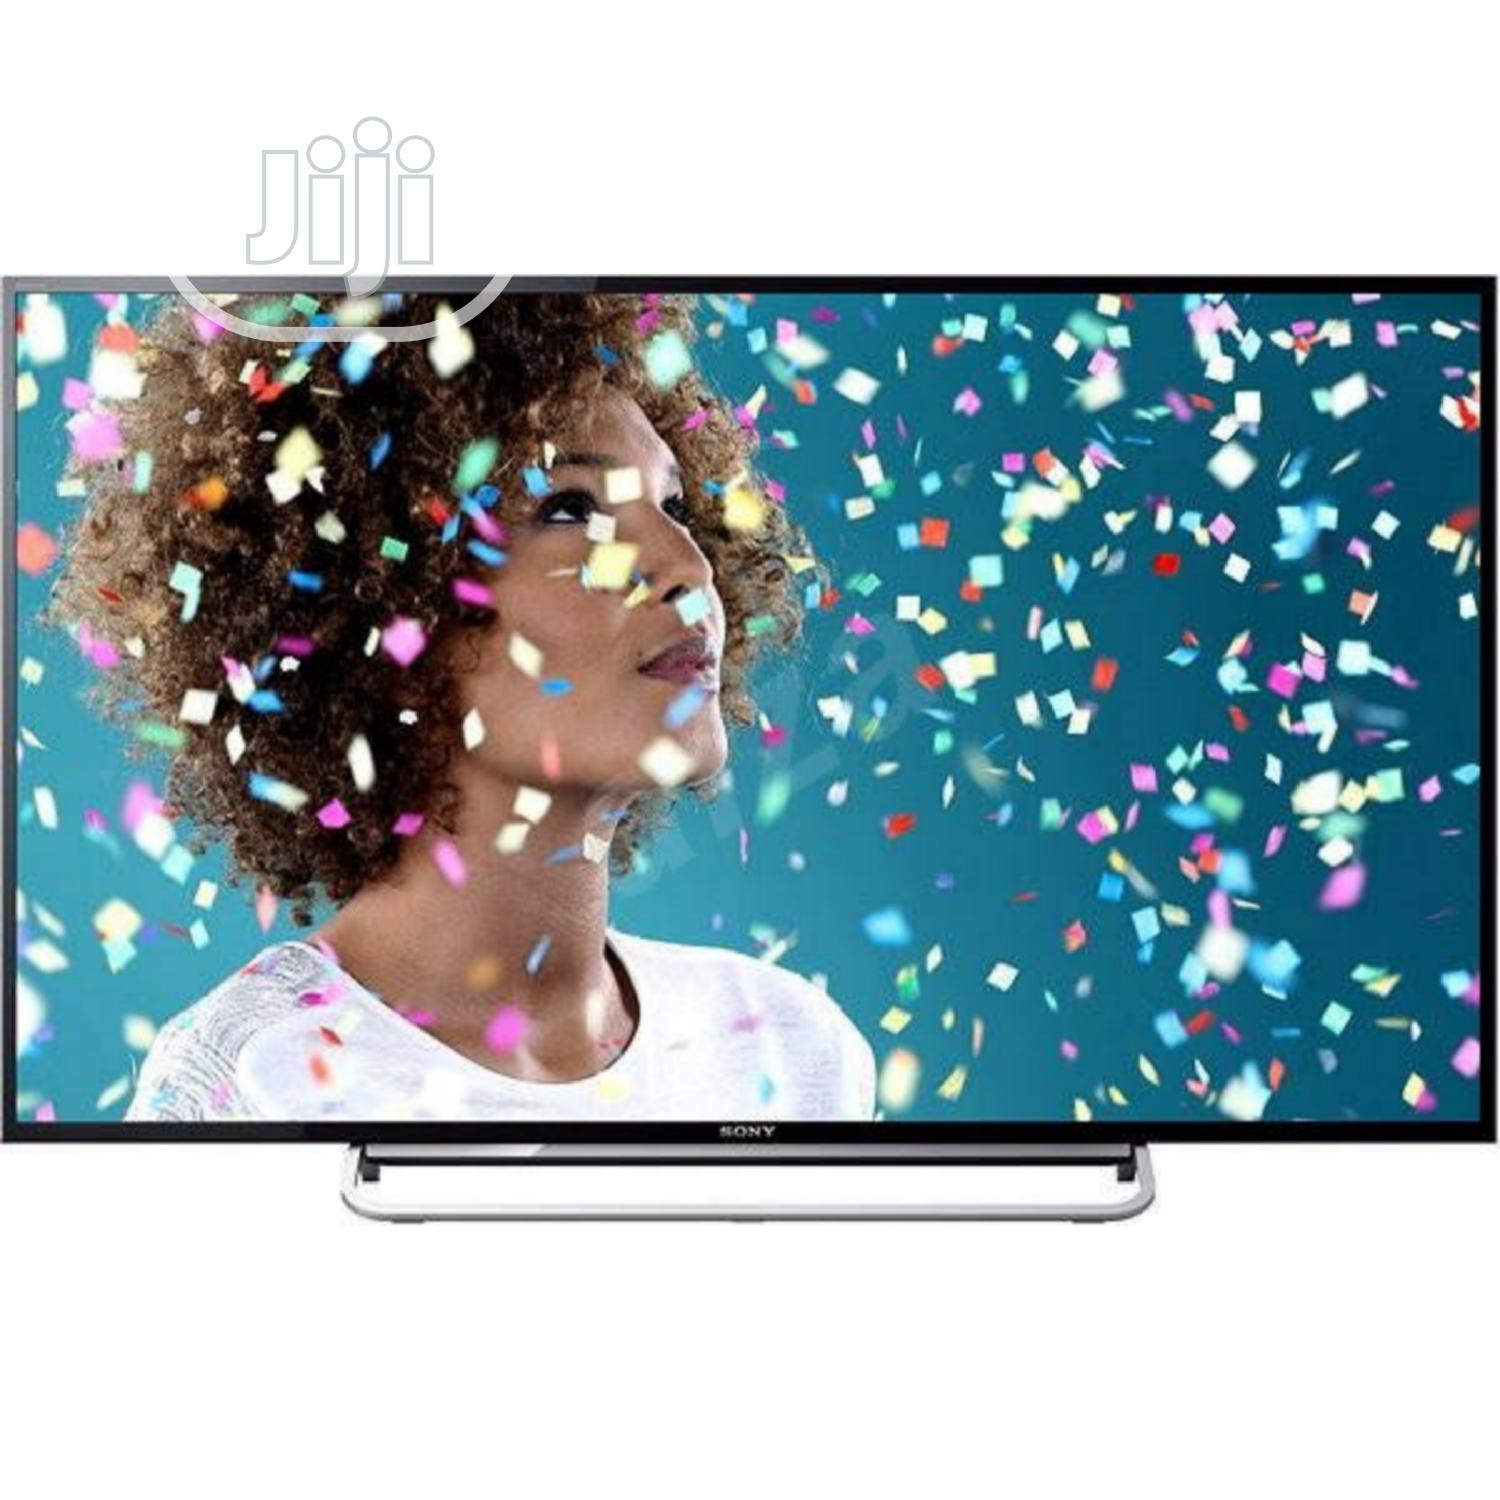 40 Inch SONY SMART LED TV (40W605B) - London Used